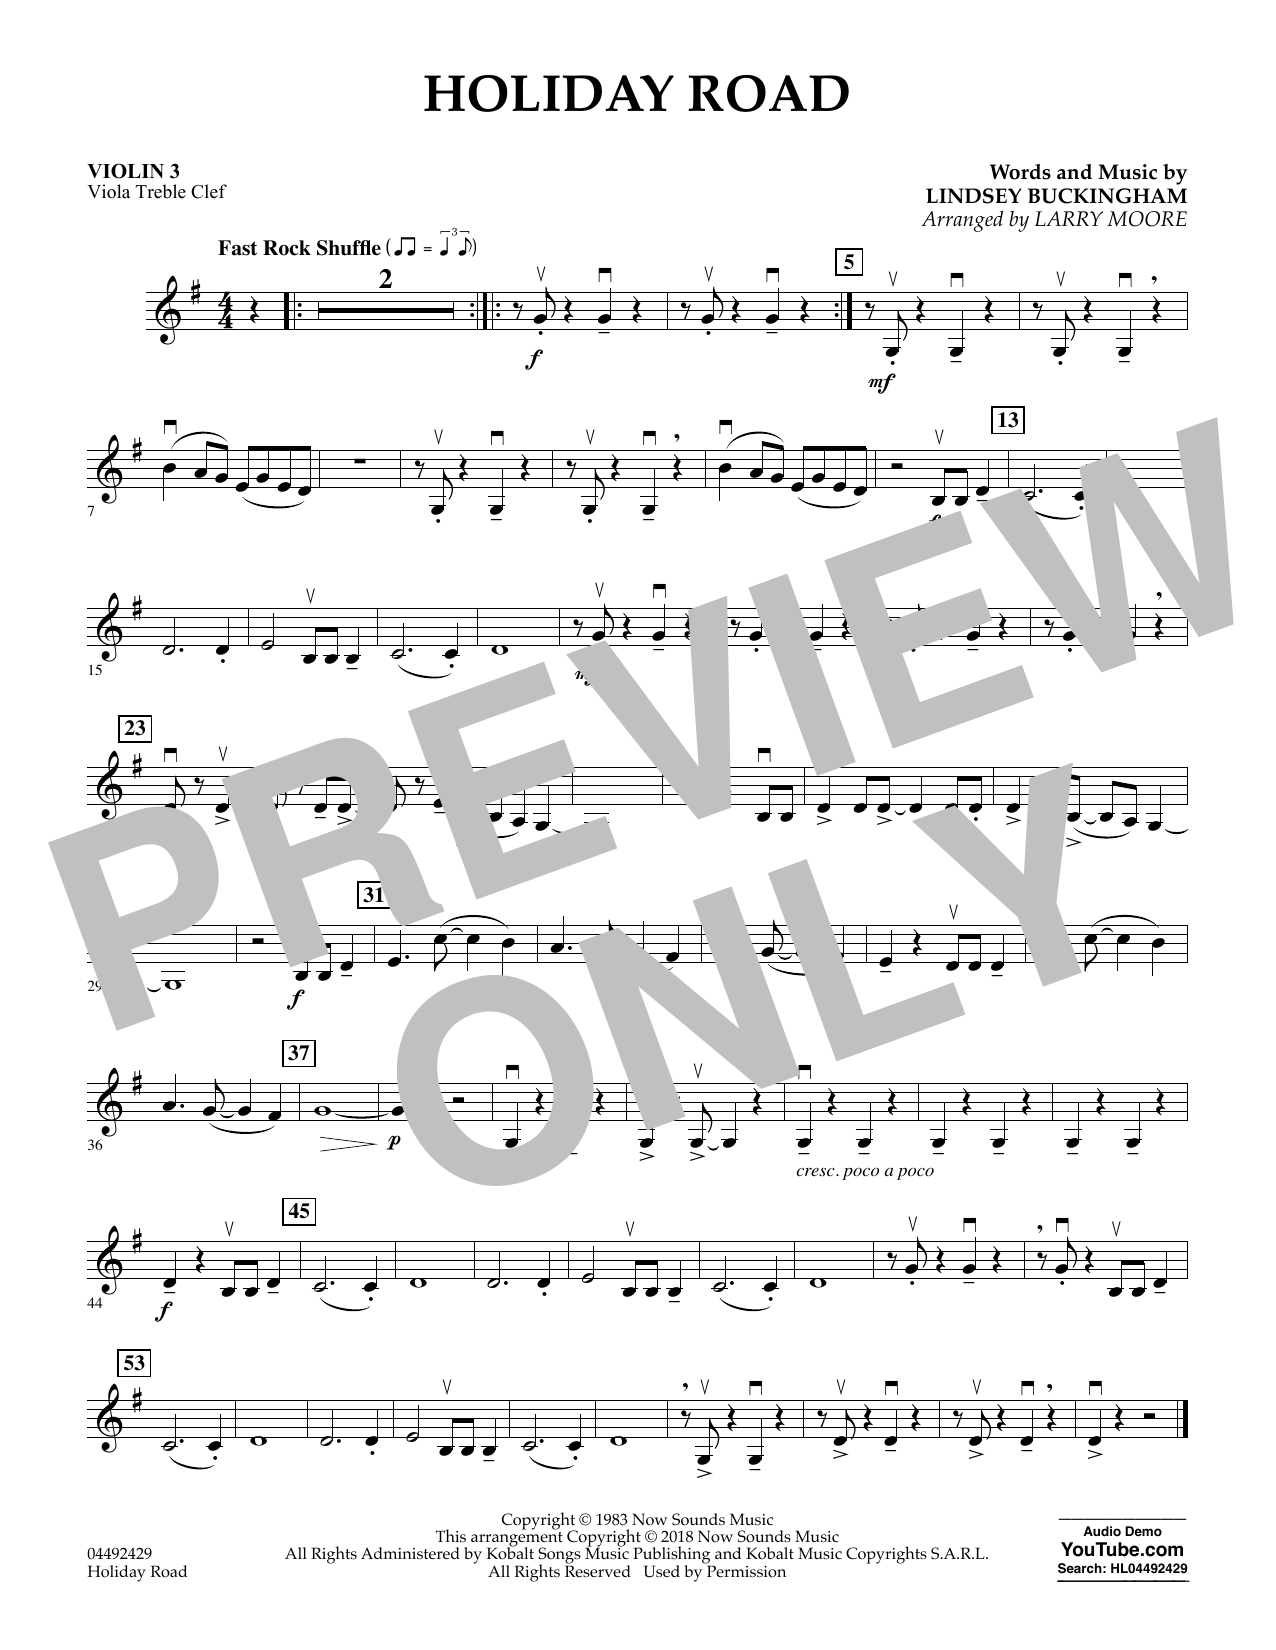 Lindsey Buckingham Holiday Road (from National Lampoon's Vacation) (arr. Larry Moore) - Violin 3 (Viola Treble Clef) sheet music preview music notes and score for Orchestra including 1 page(s)